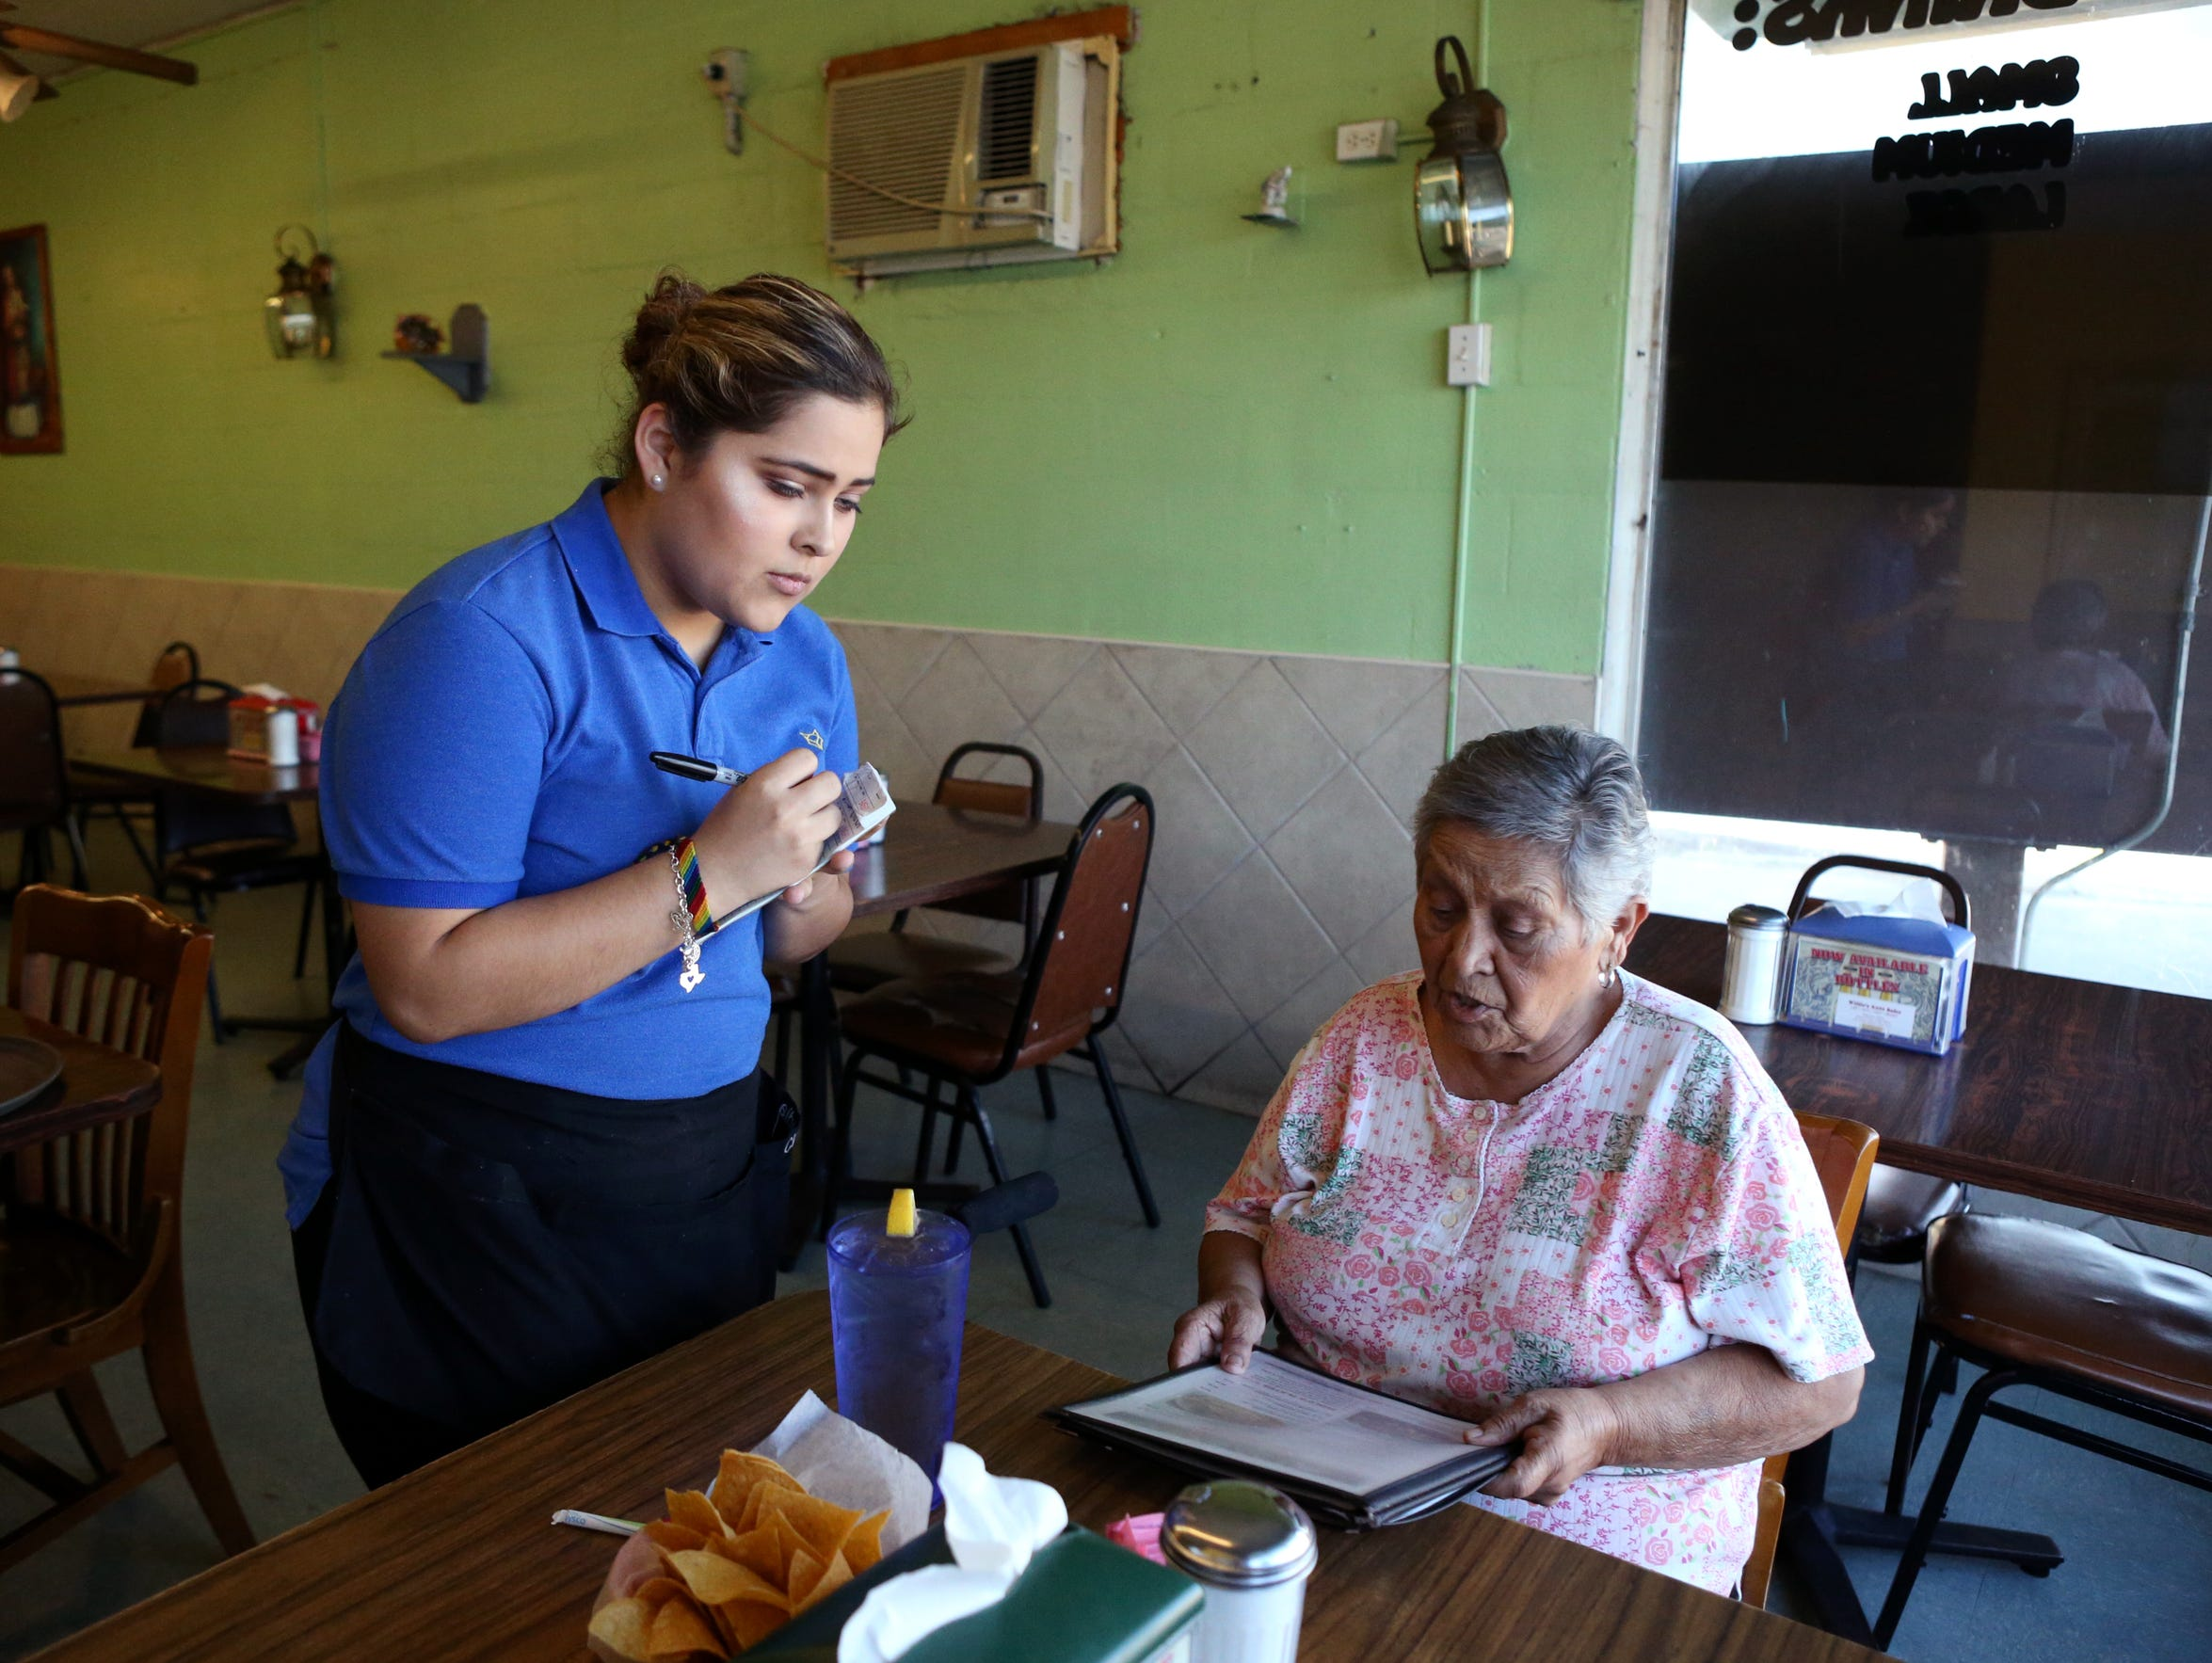 Claudia Jimenez, 19, takes an order from Lupe Muñoz at work on October 18, 2017. She wonders what her life would have been like if she had instead grown up in Jalisco, Mexico, where she was born.